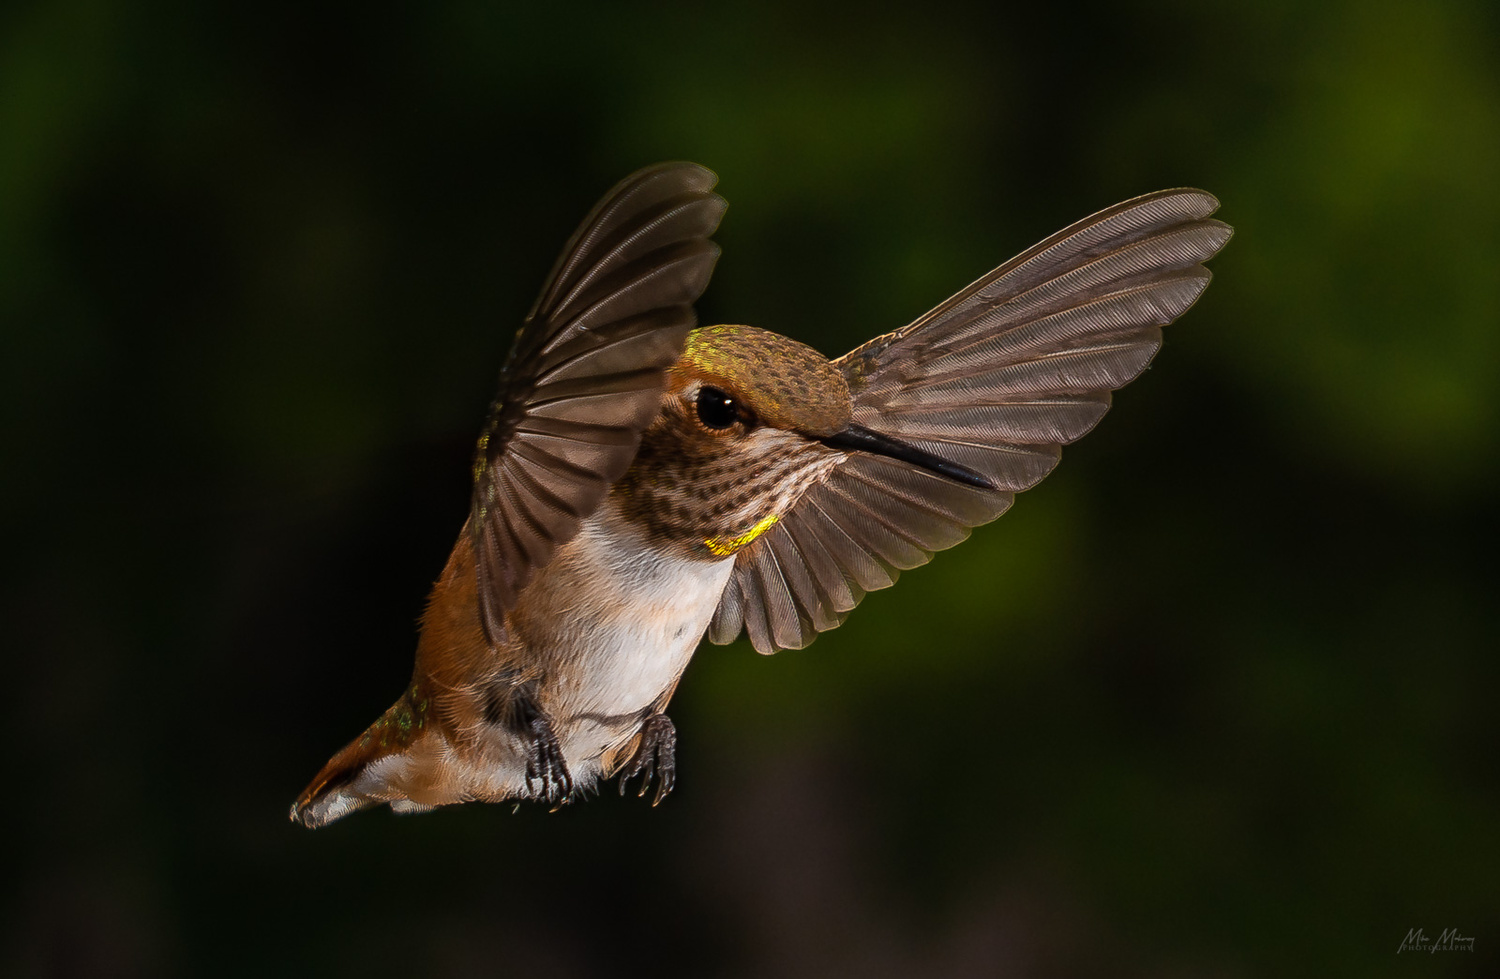 Hovering by Mike Mahoney